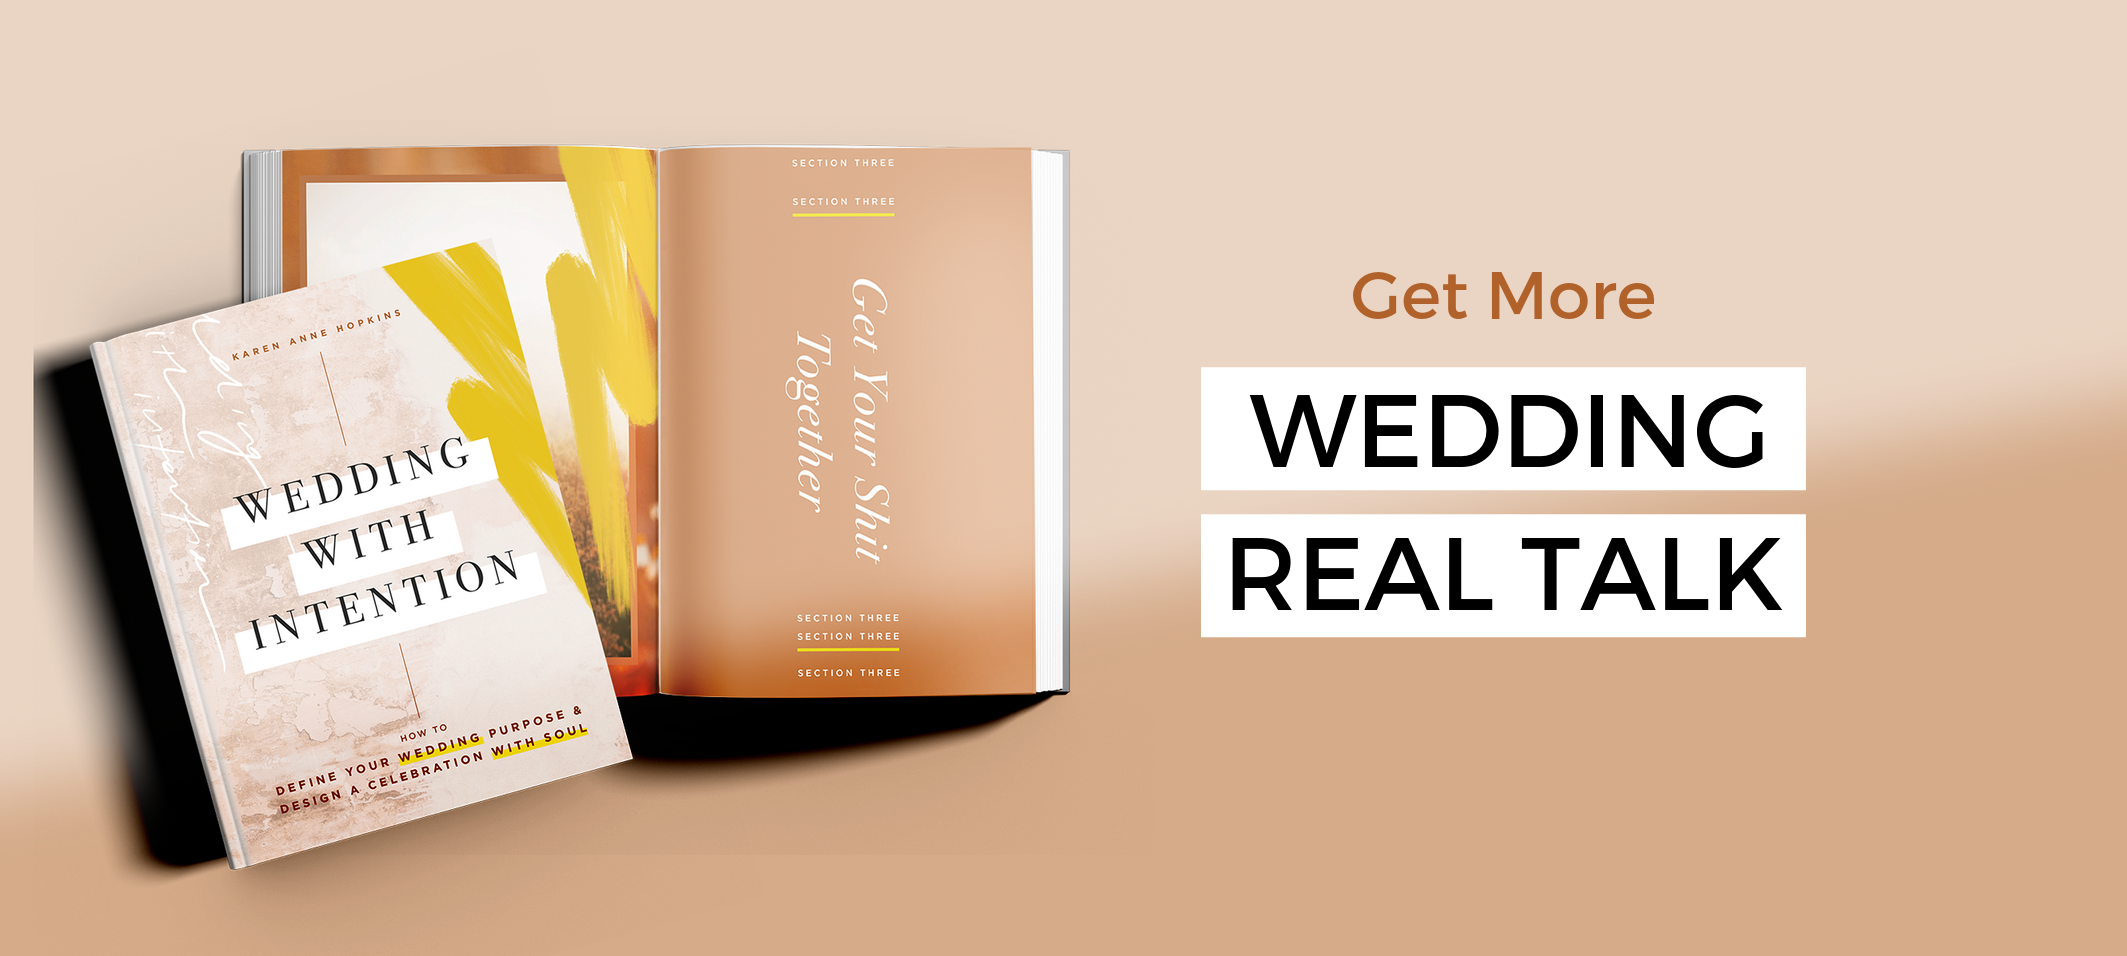 Ready for a new approach? - I think it's time that weddings got a shake-up, don't you?